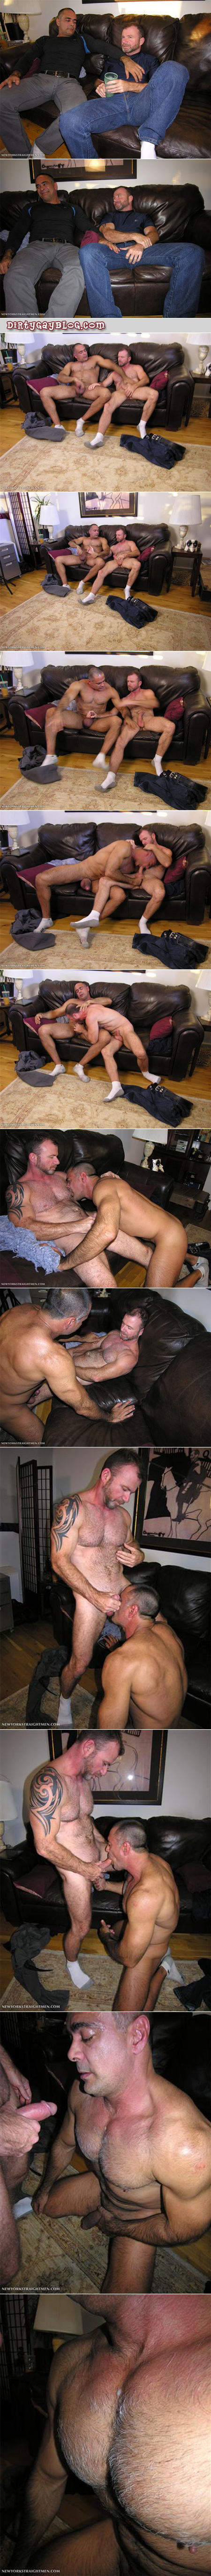 Furry, muscular, mature Daddies wearing white athletic socks get each other off, even though they're straight.